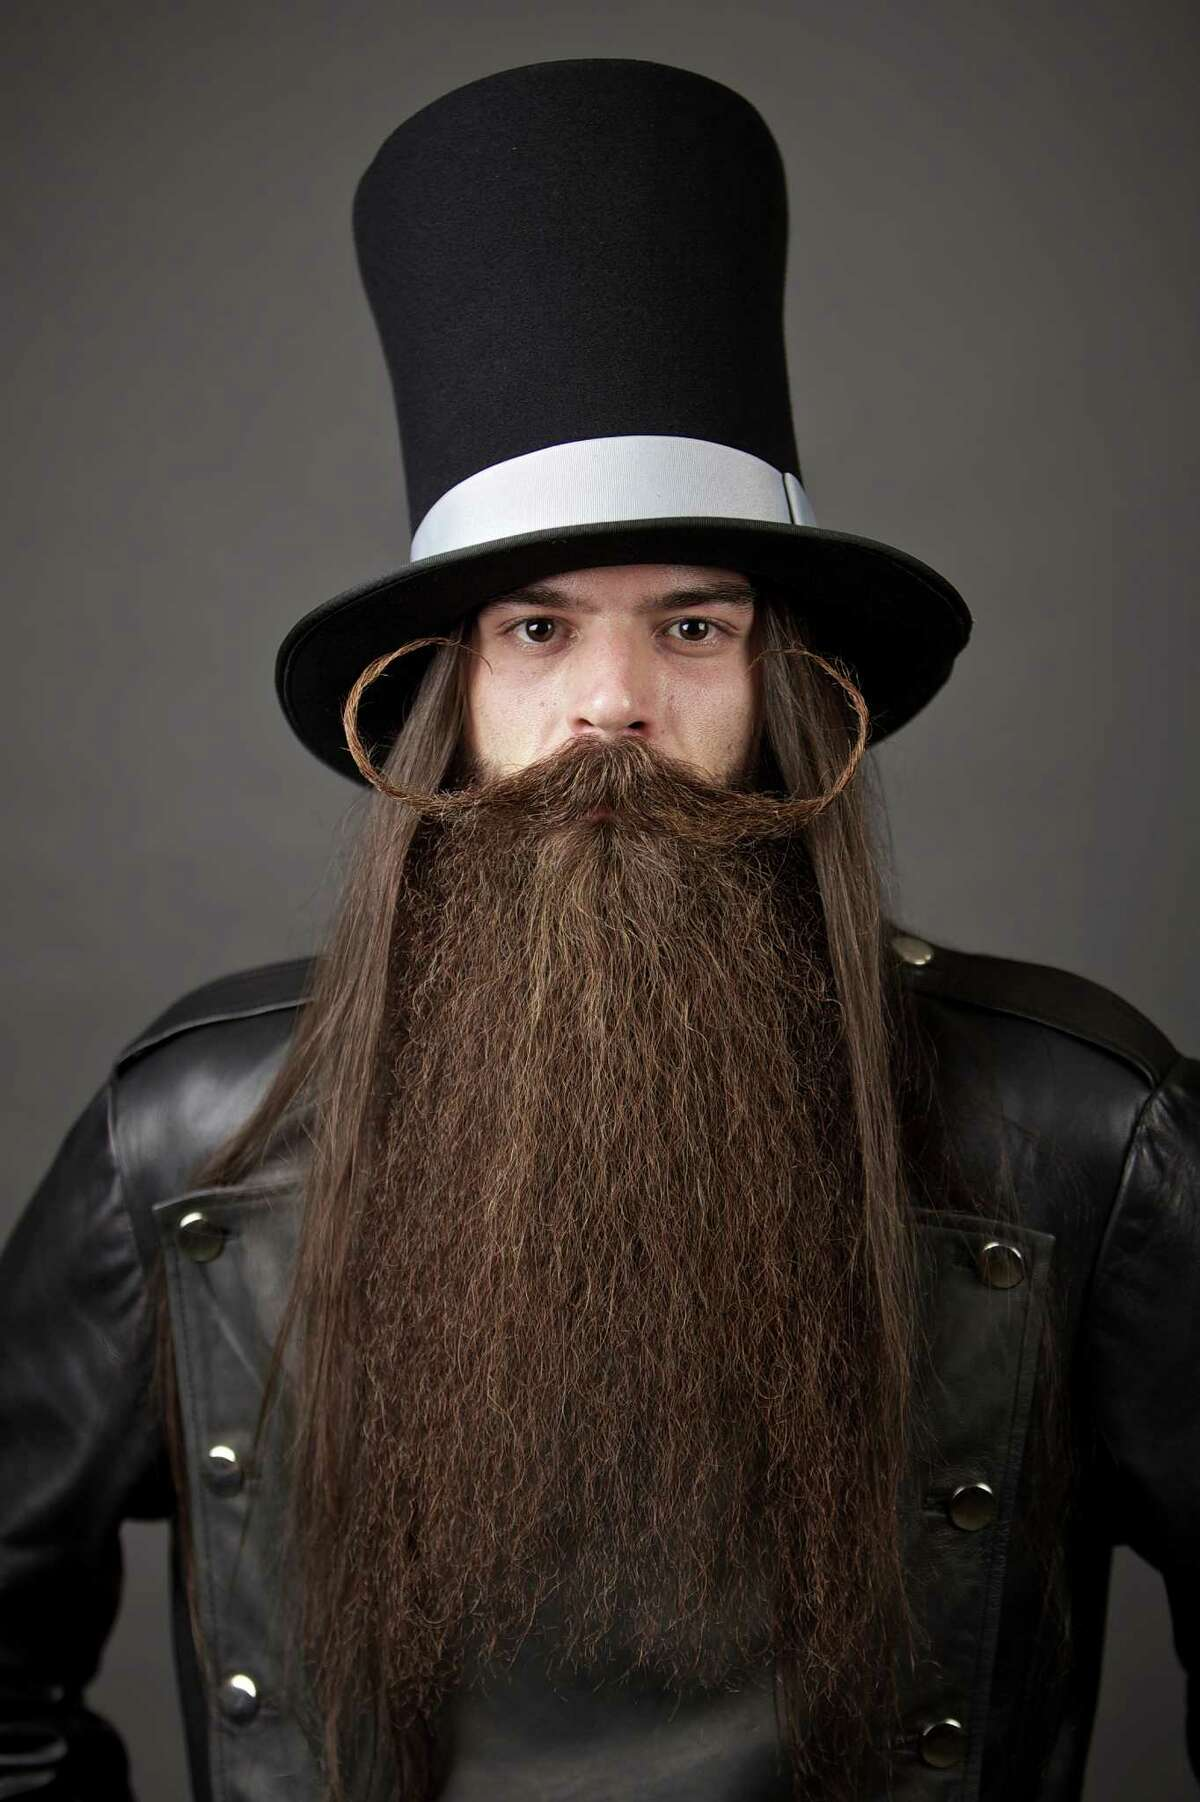 The Just For Men World Beard and Moustache Championships crowned 18 title winners, highlighting the best and boldest examples of facial hair from across the globe on Saturday, October 25th, 2014.